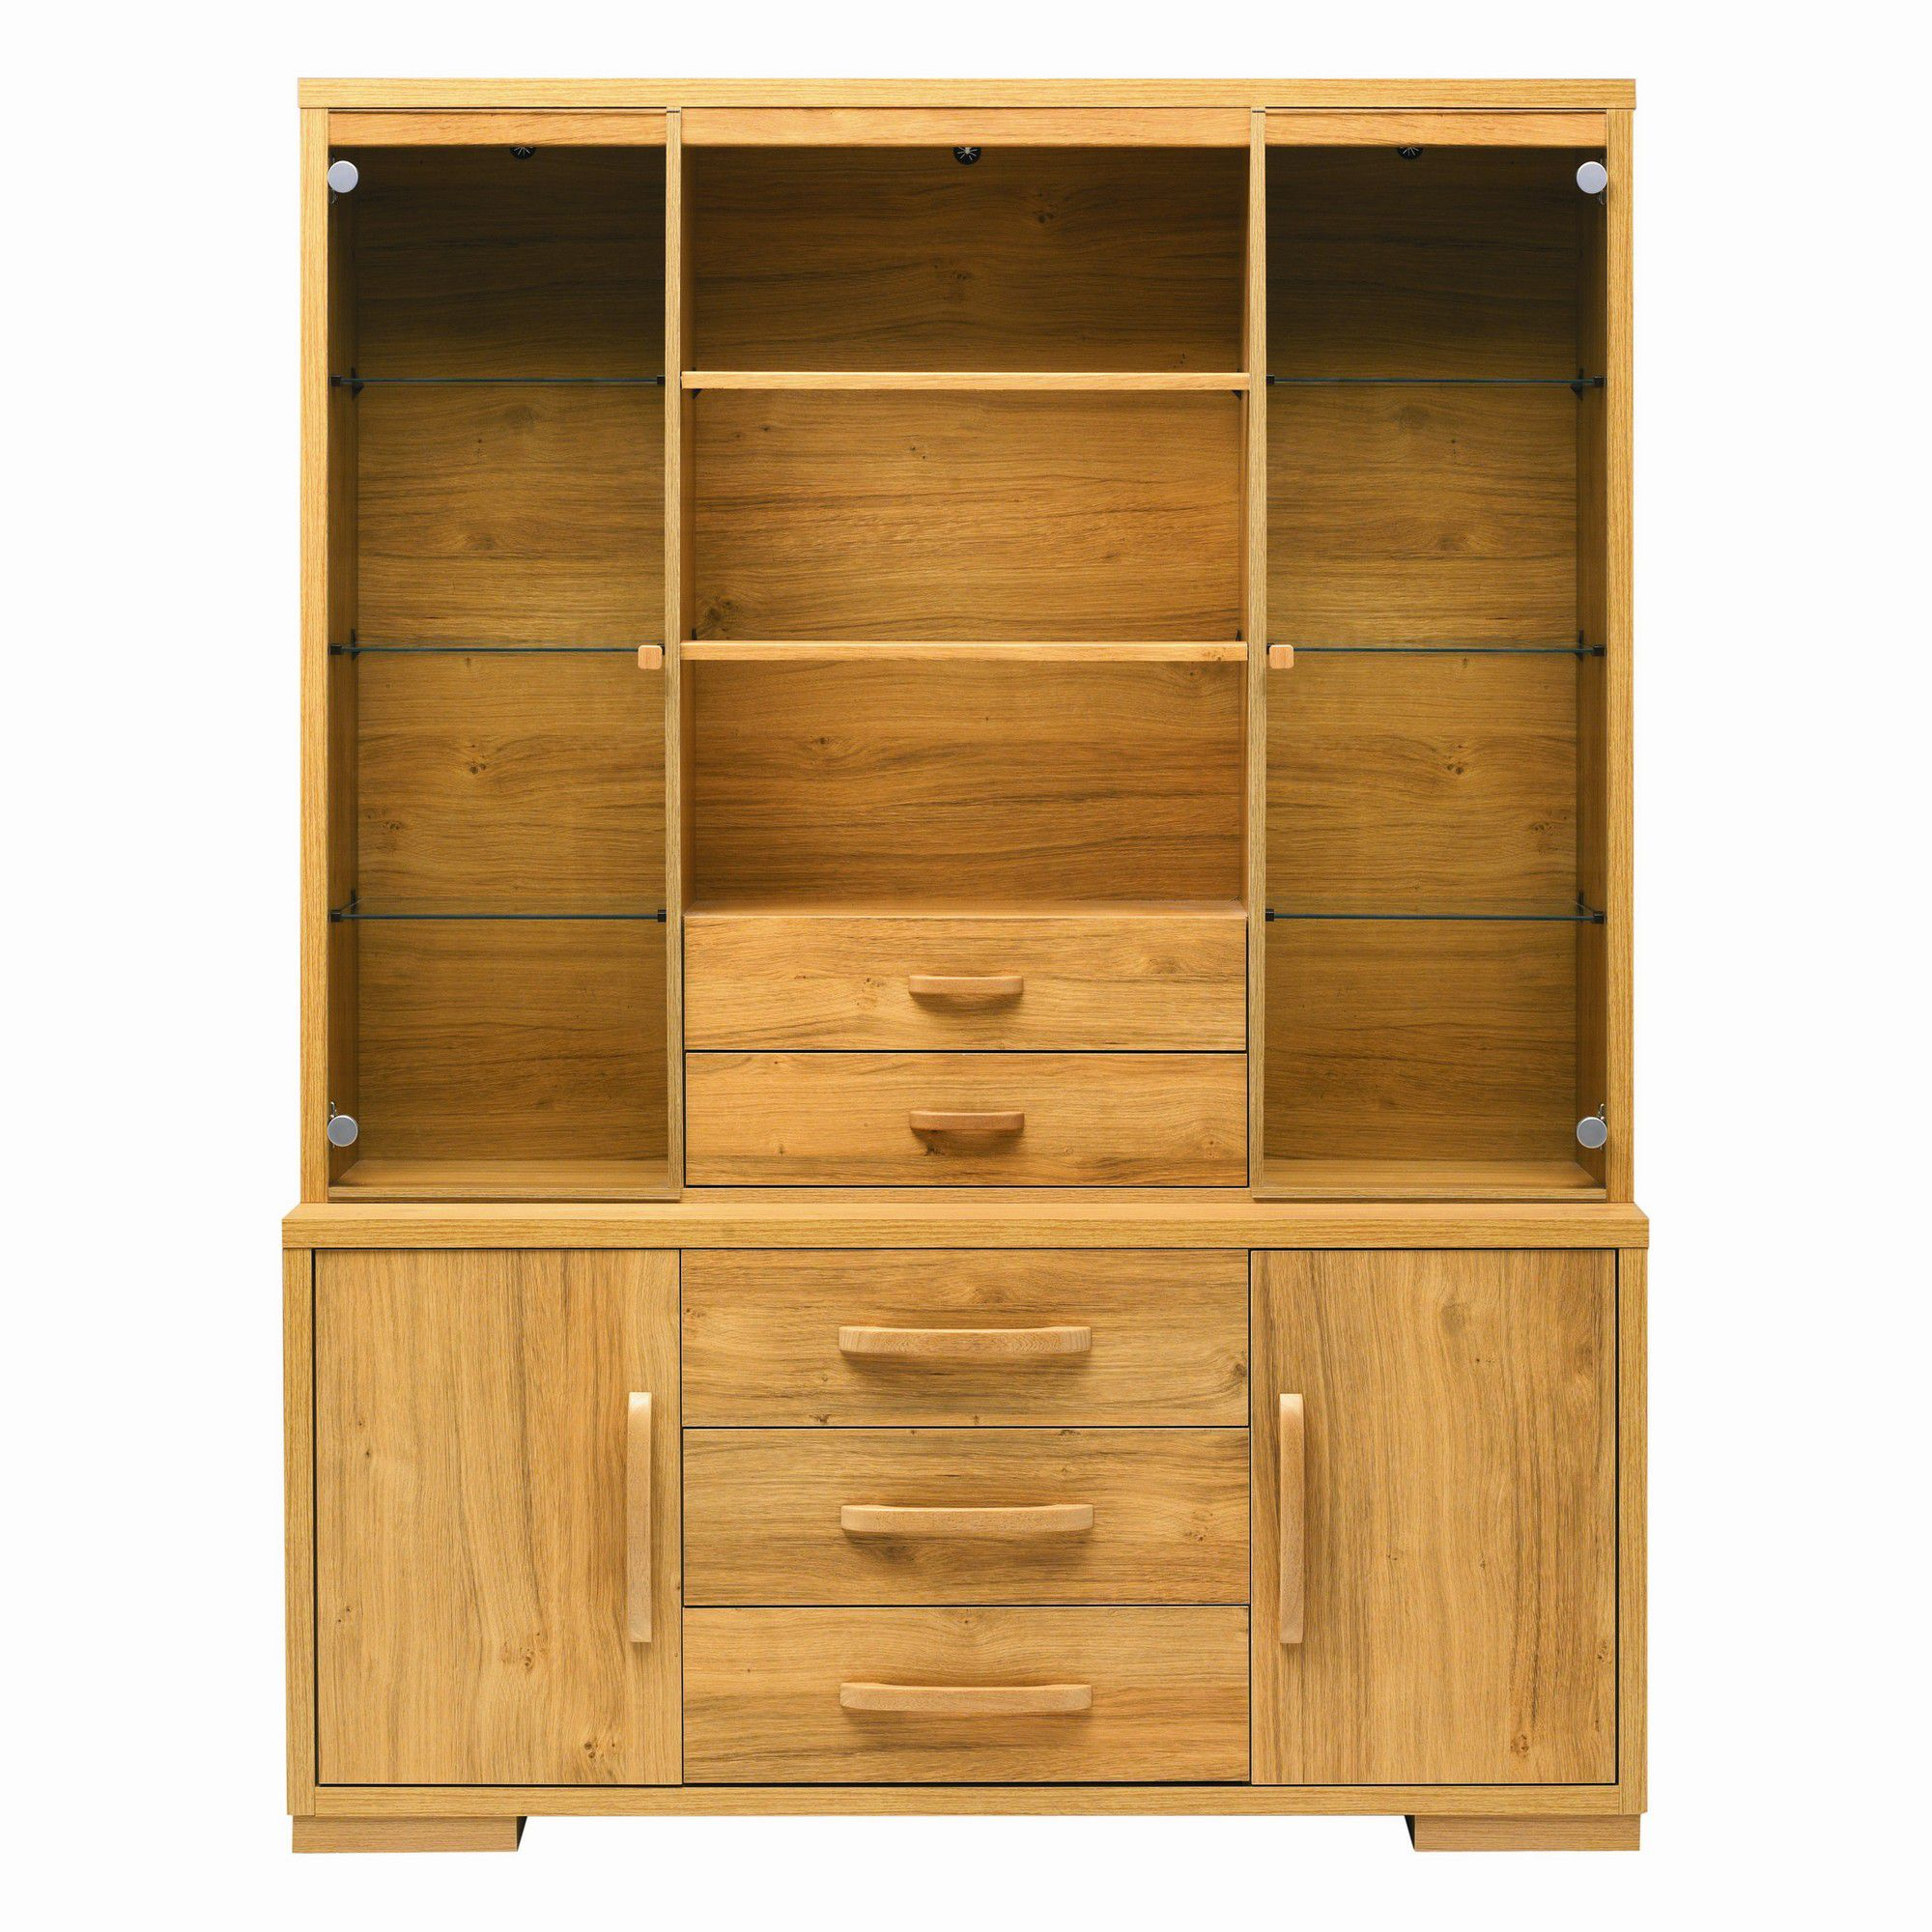 Caxton Strand Open Display Cabinet in Oak at Tesco Direct